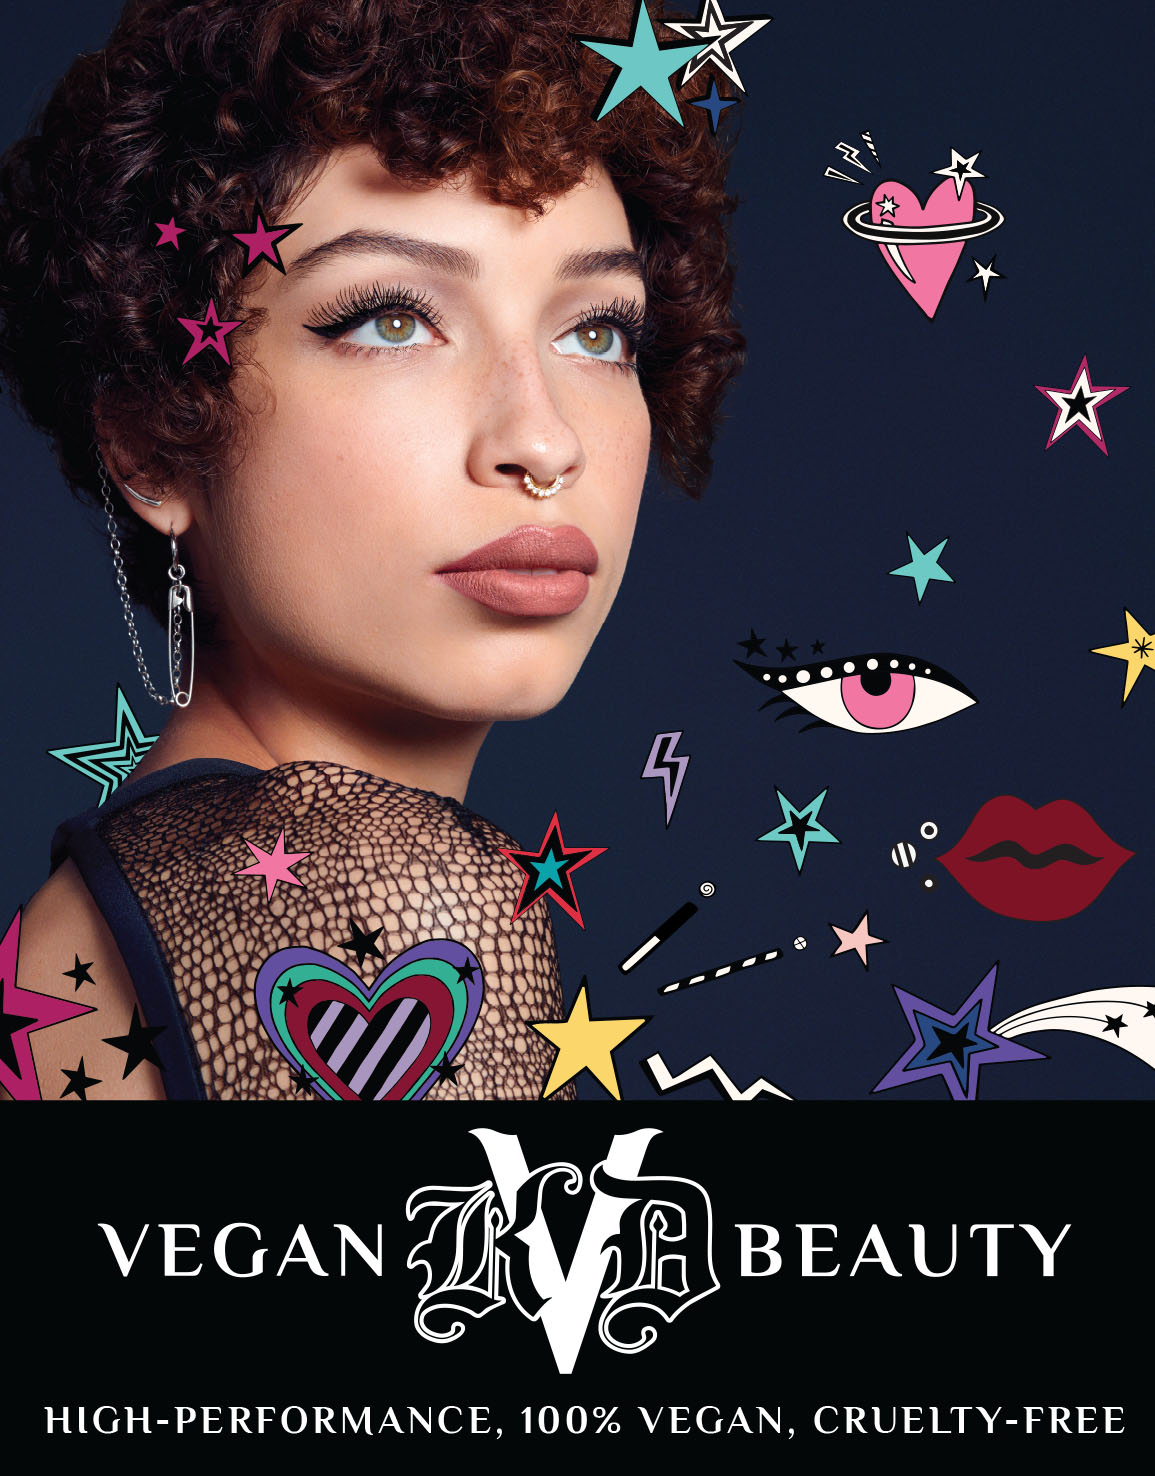 KVD Vegan Beauty launches their iconic, high performance, 100% vegan and cruelty-free makeup at the nation's leading beauty retailer